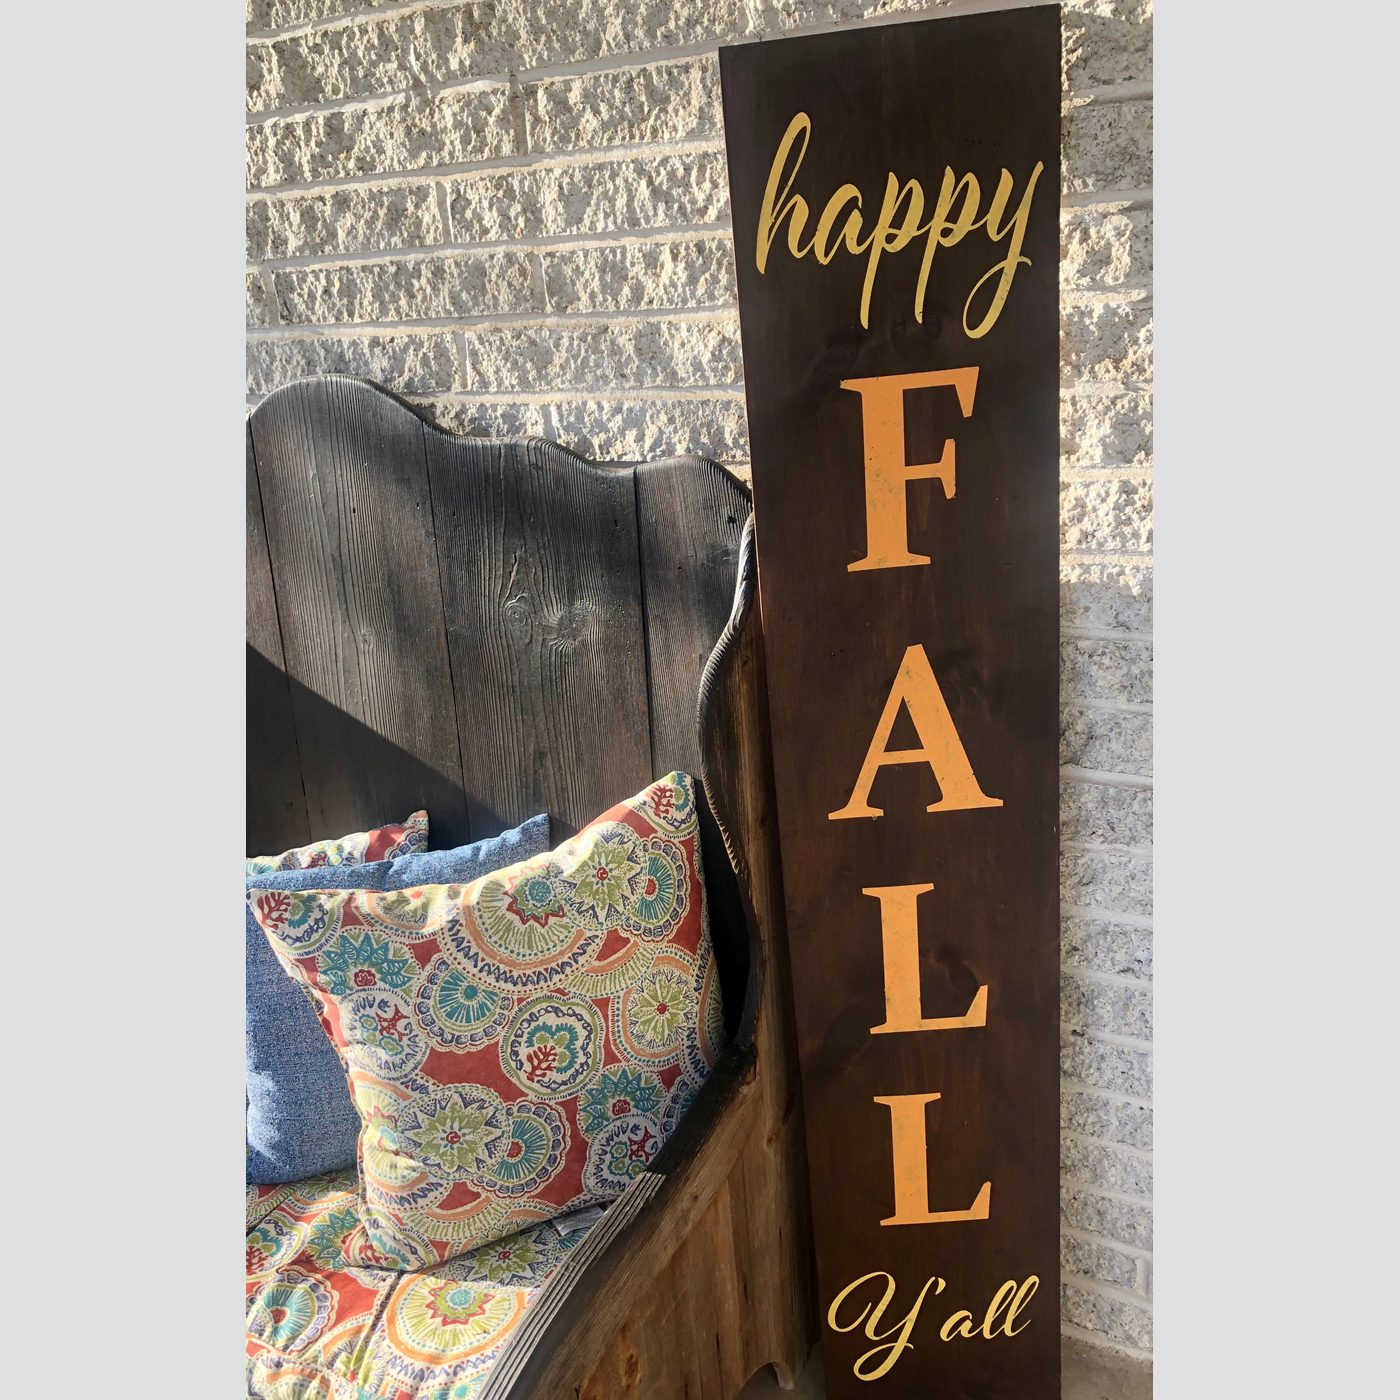 Happy Fall Y'all DIY wood sign welcome